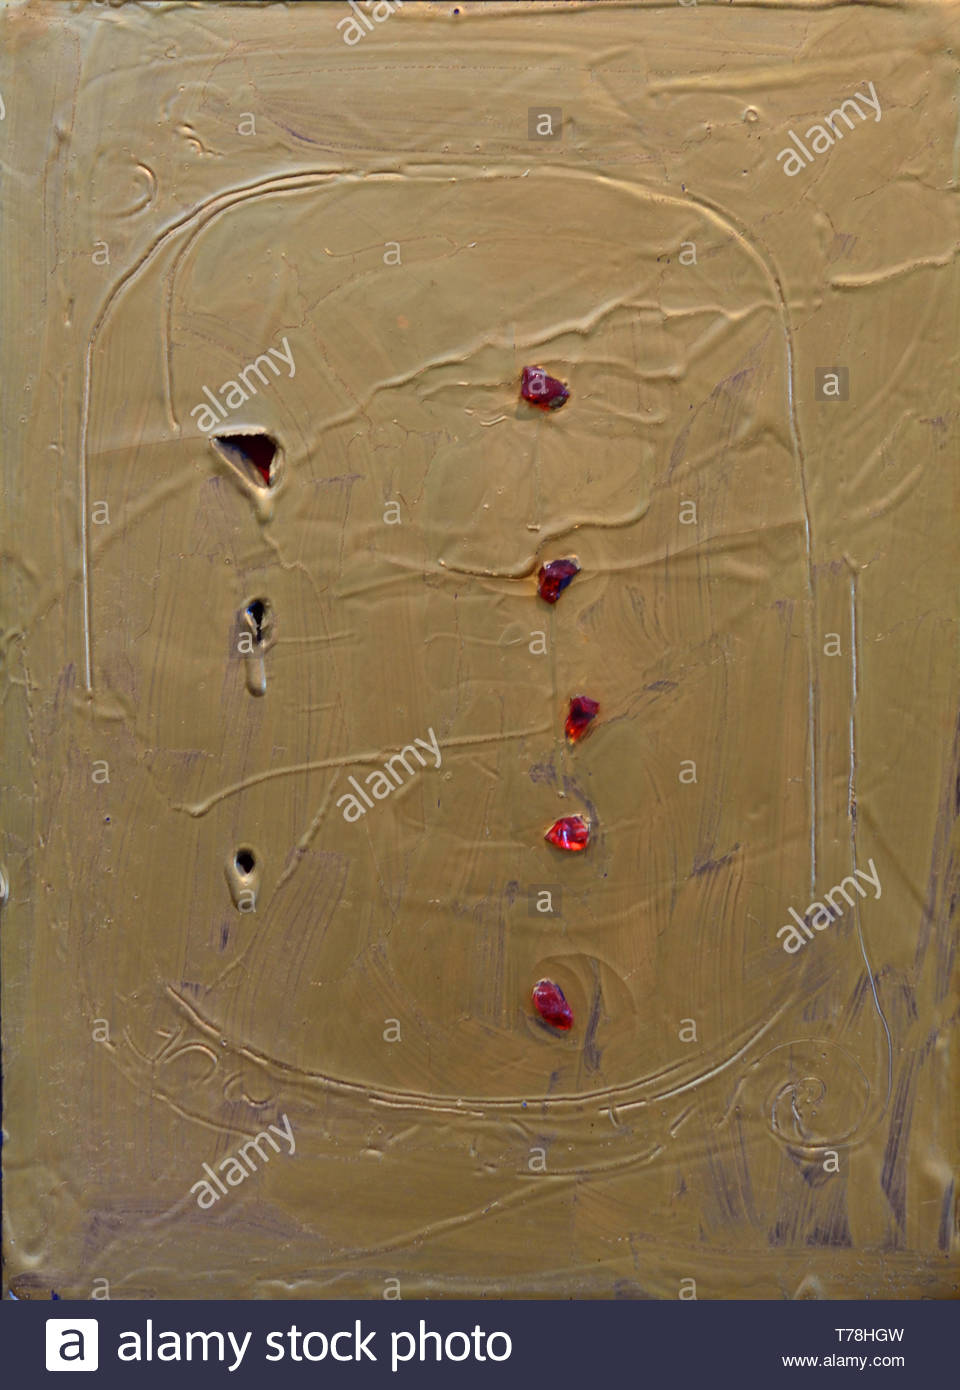 Concetto Spaziale - Space Concept by Lucio Fontana born in 1899 Argentina Argentinian - Stock Image